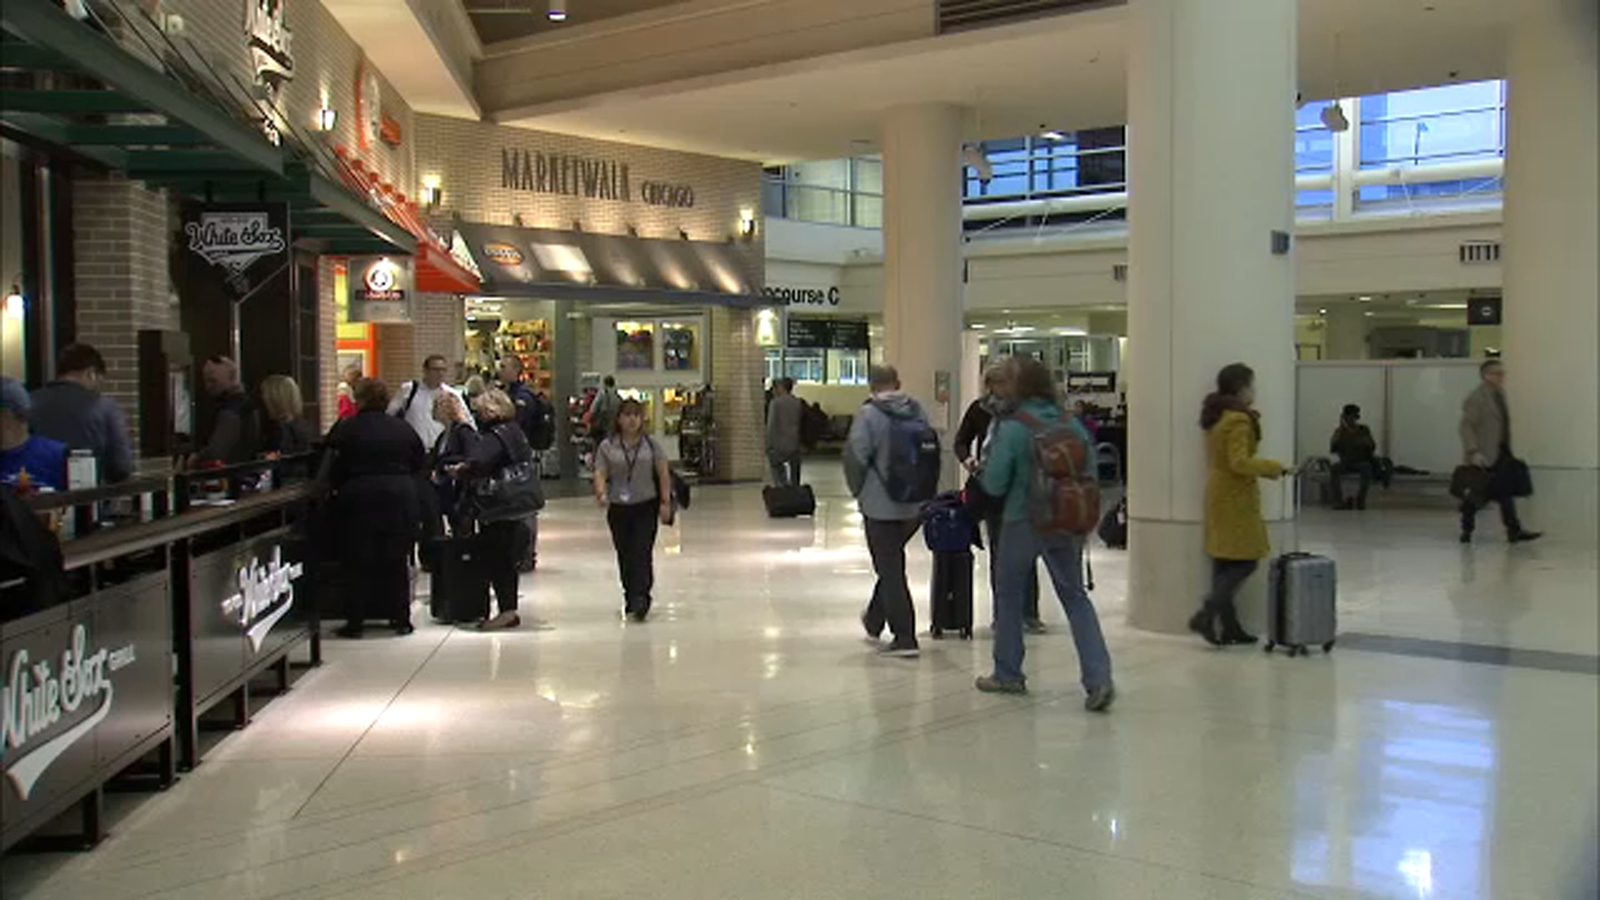 Midway ranked as worst airport in US, report says